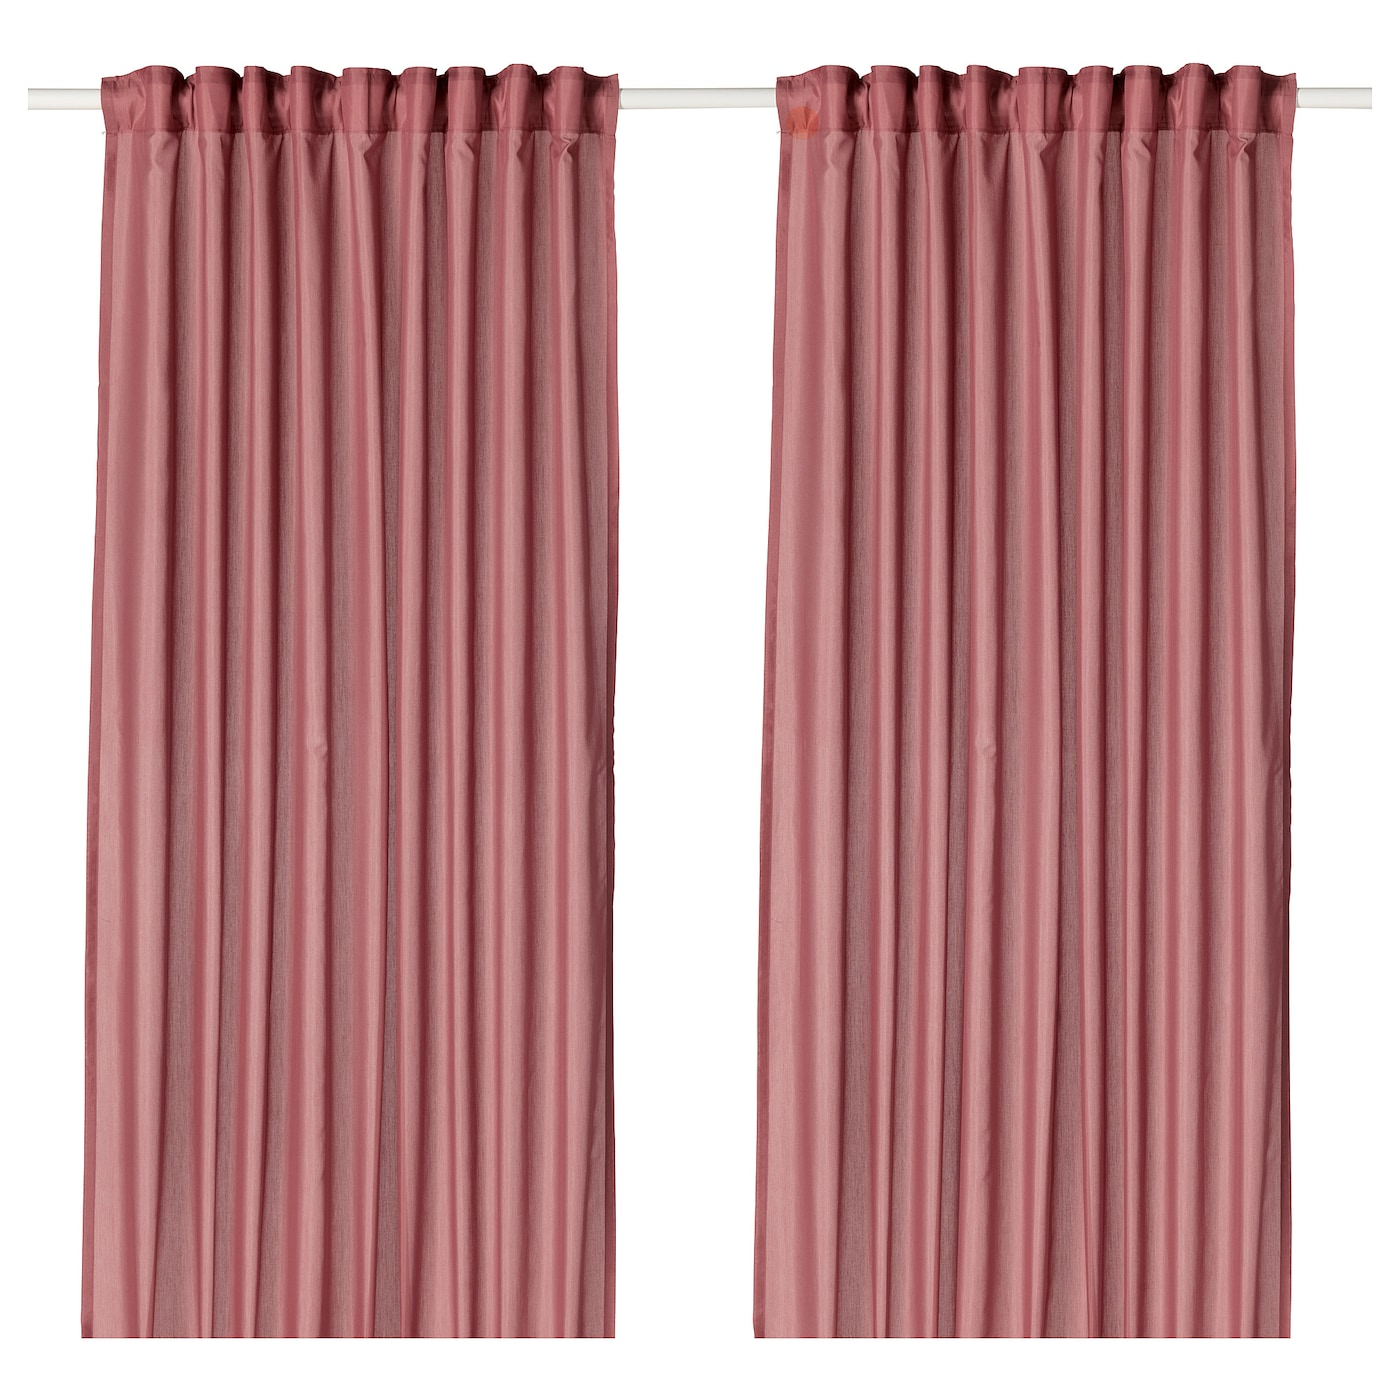 https://www.ikea.com/be/nl/images/products/vivan-gordijnen-1-paar-roze__0568007_pe665199_s5.jpg